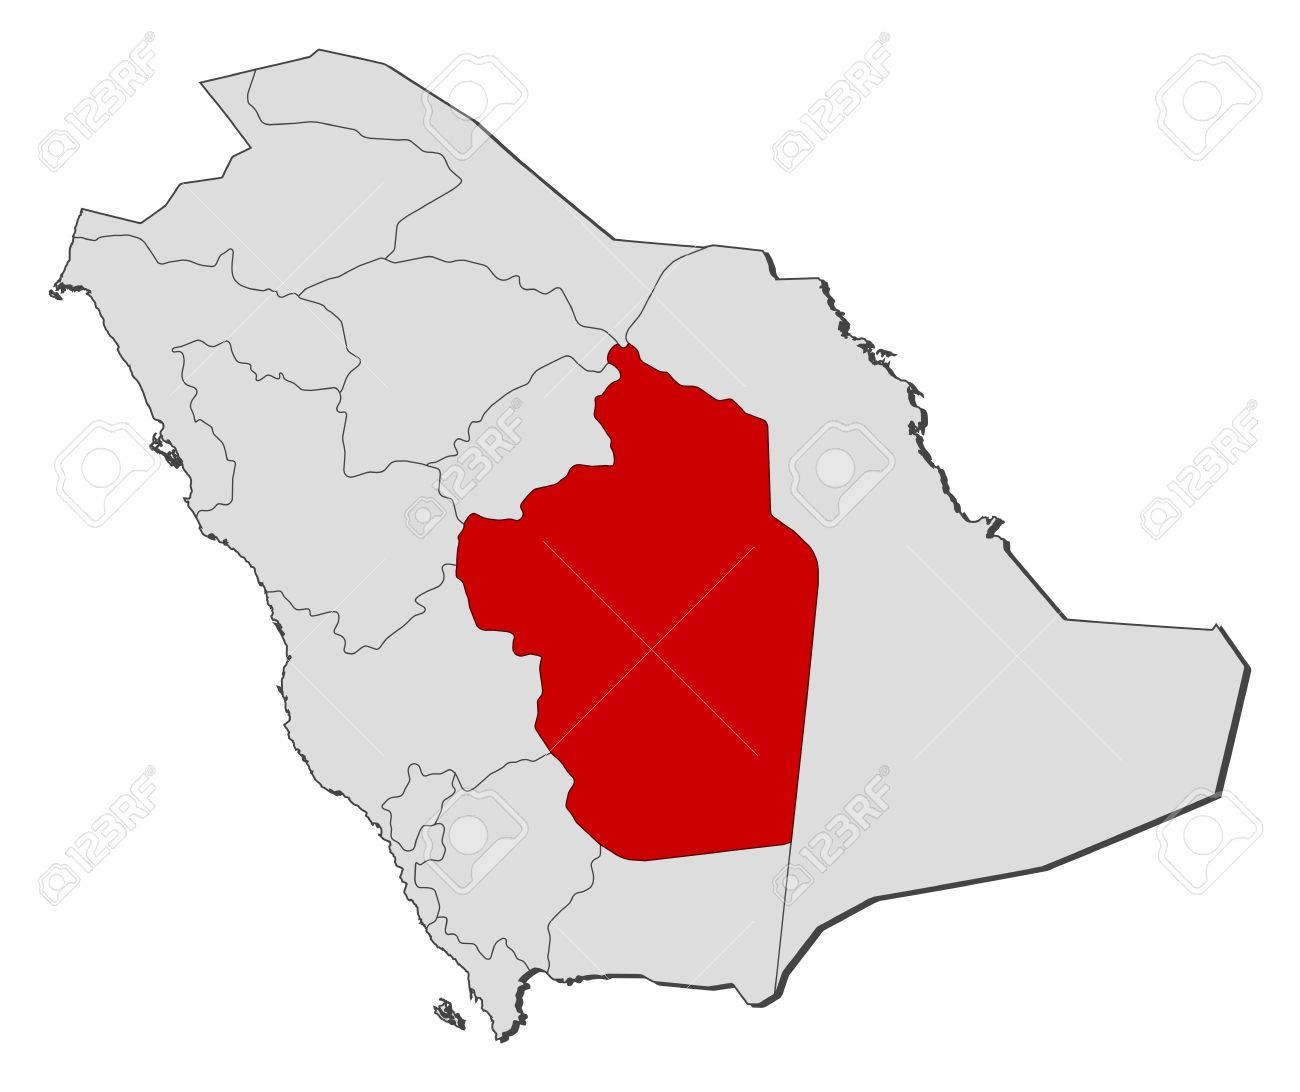 Political Map Of Saudi Arabia With The Several Provinces Where ... on map of pretoria south africa, map of mecca and medina, map of cairo egypt, map of tehran iran, map of kabul afghanistan, map of mexico city mexico, map of johannesburg south africa, map of durban south africa, map of phnom penh cambodia, map of santiago chile, map of madrid spain, map of bogota colombia, map of buenos aires argentina, map of quito ecuador, map of perth australia, map of nairobi kenya, map of wellington new zealand, map of shanghai china, map of hanoi vietnam, map of damascus syria,